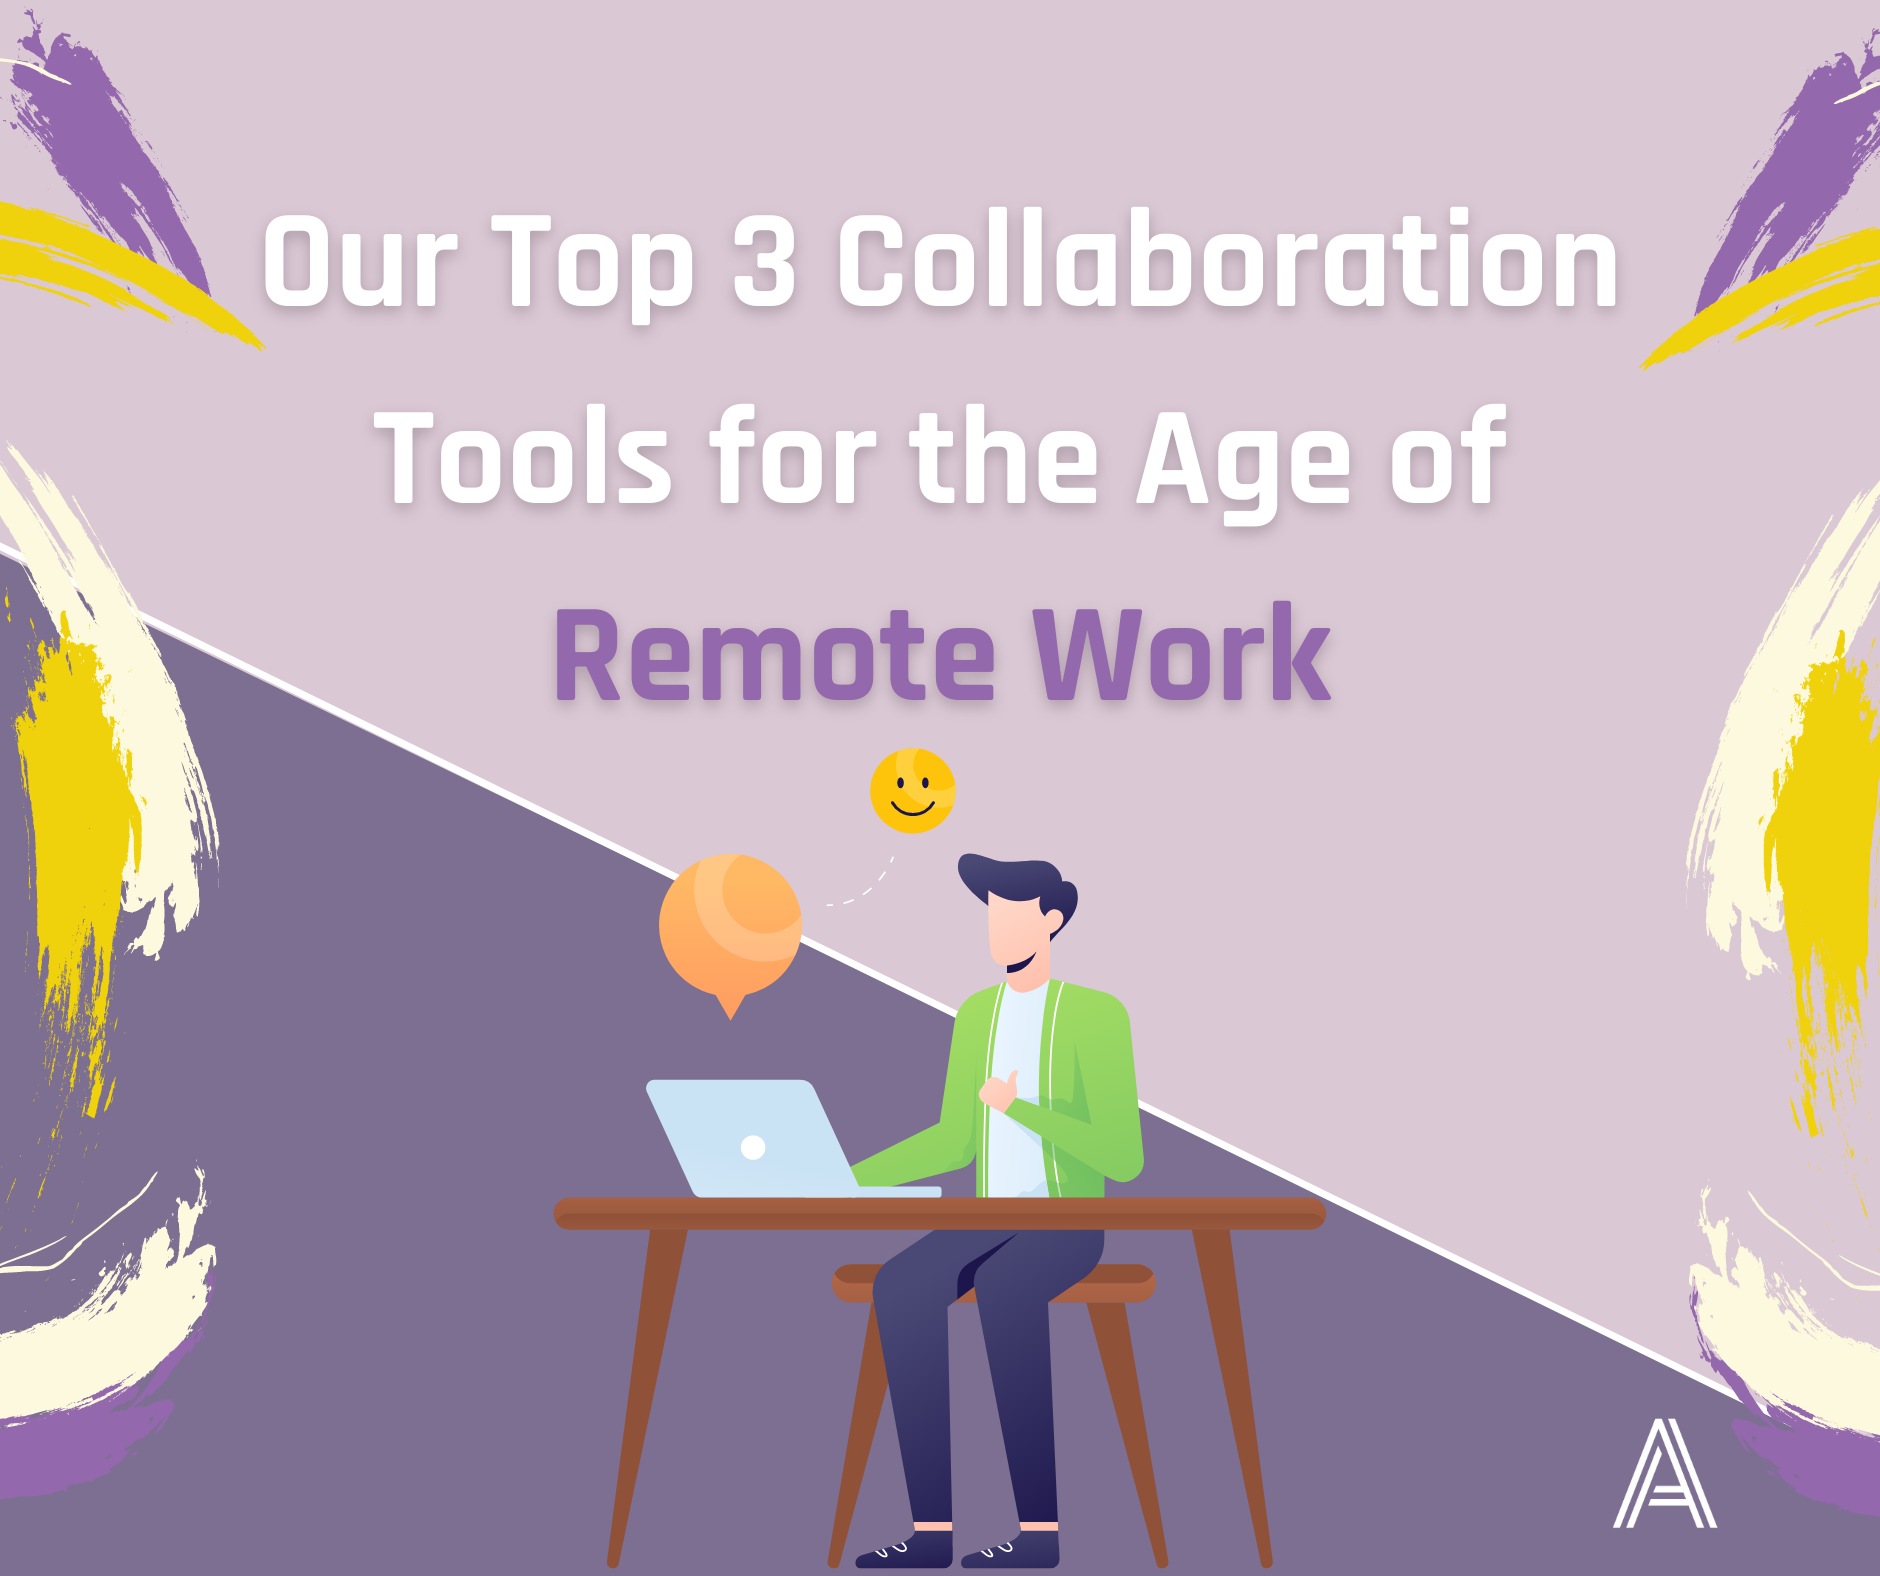 Our Top 3 Collaboration Tools for the Age of Remote Work